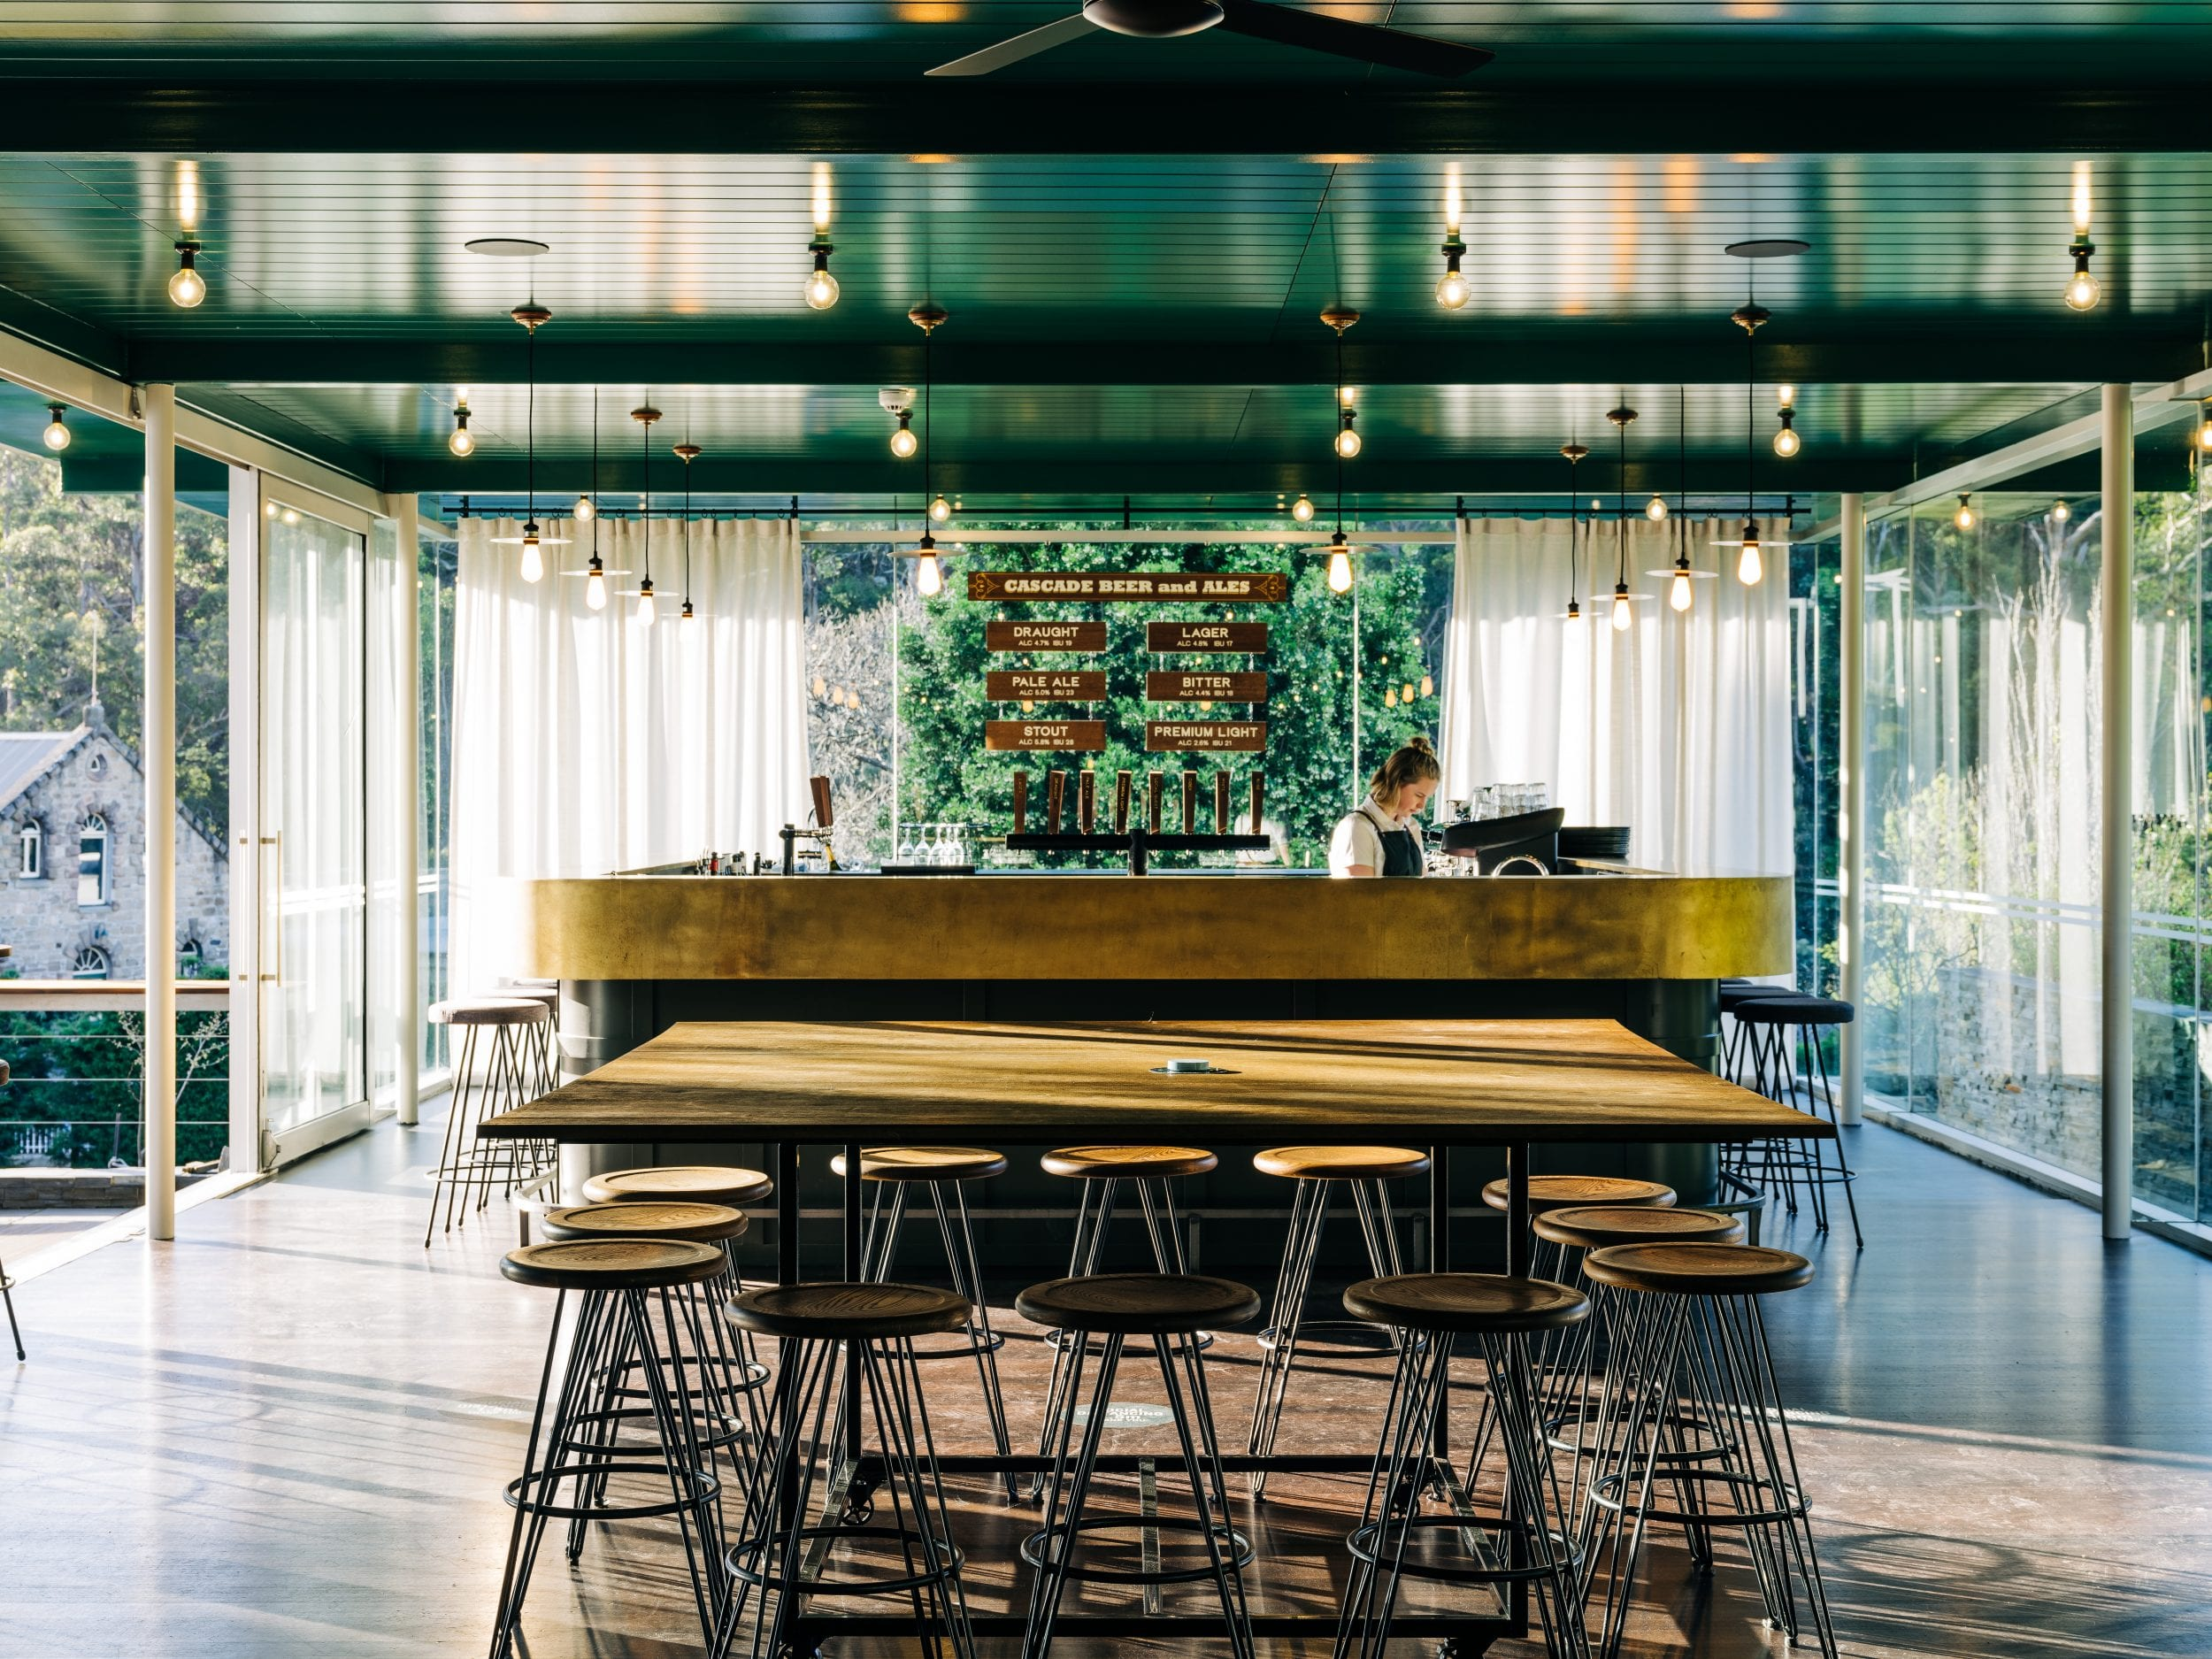 From bay views to beer taps, JAWS Architects uses Tasmanian Oak to tell a local story